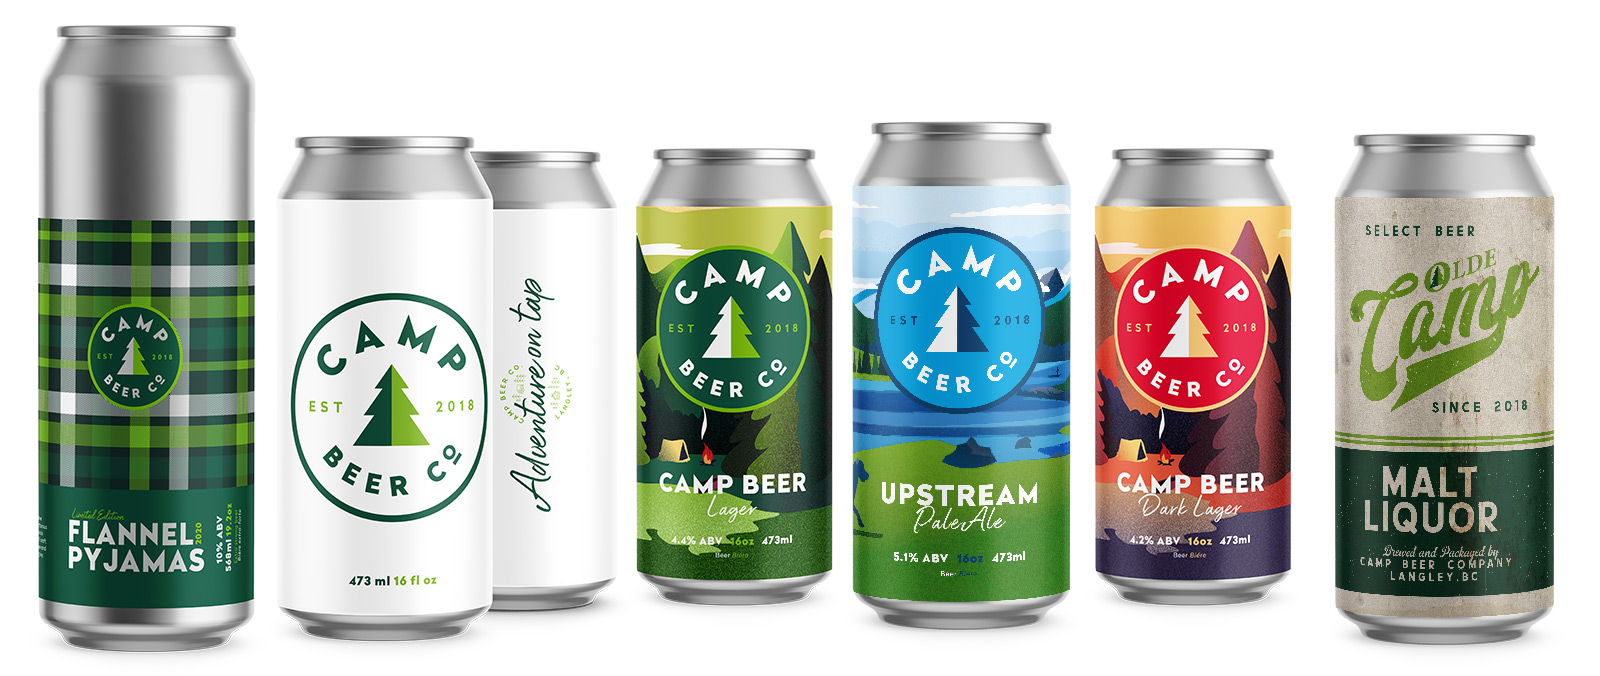 Camp Cans - Digital Marketing Agency Vancouver - Blue Meta